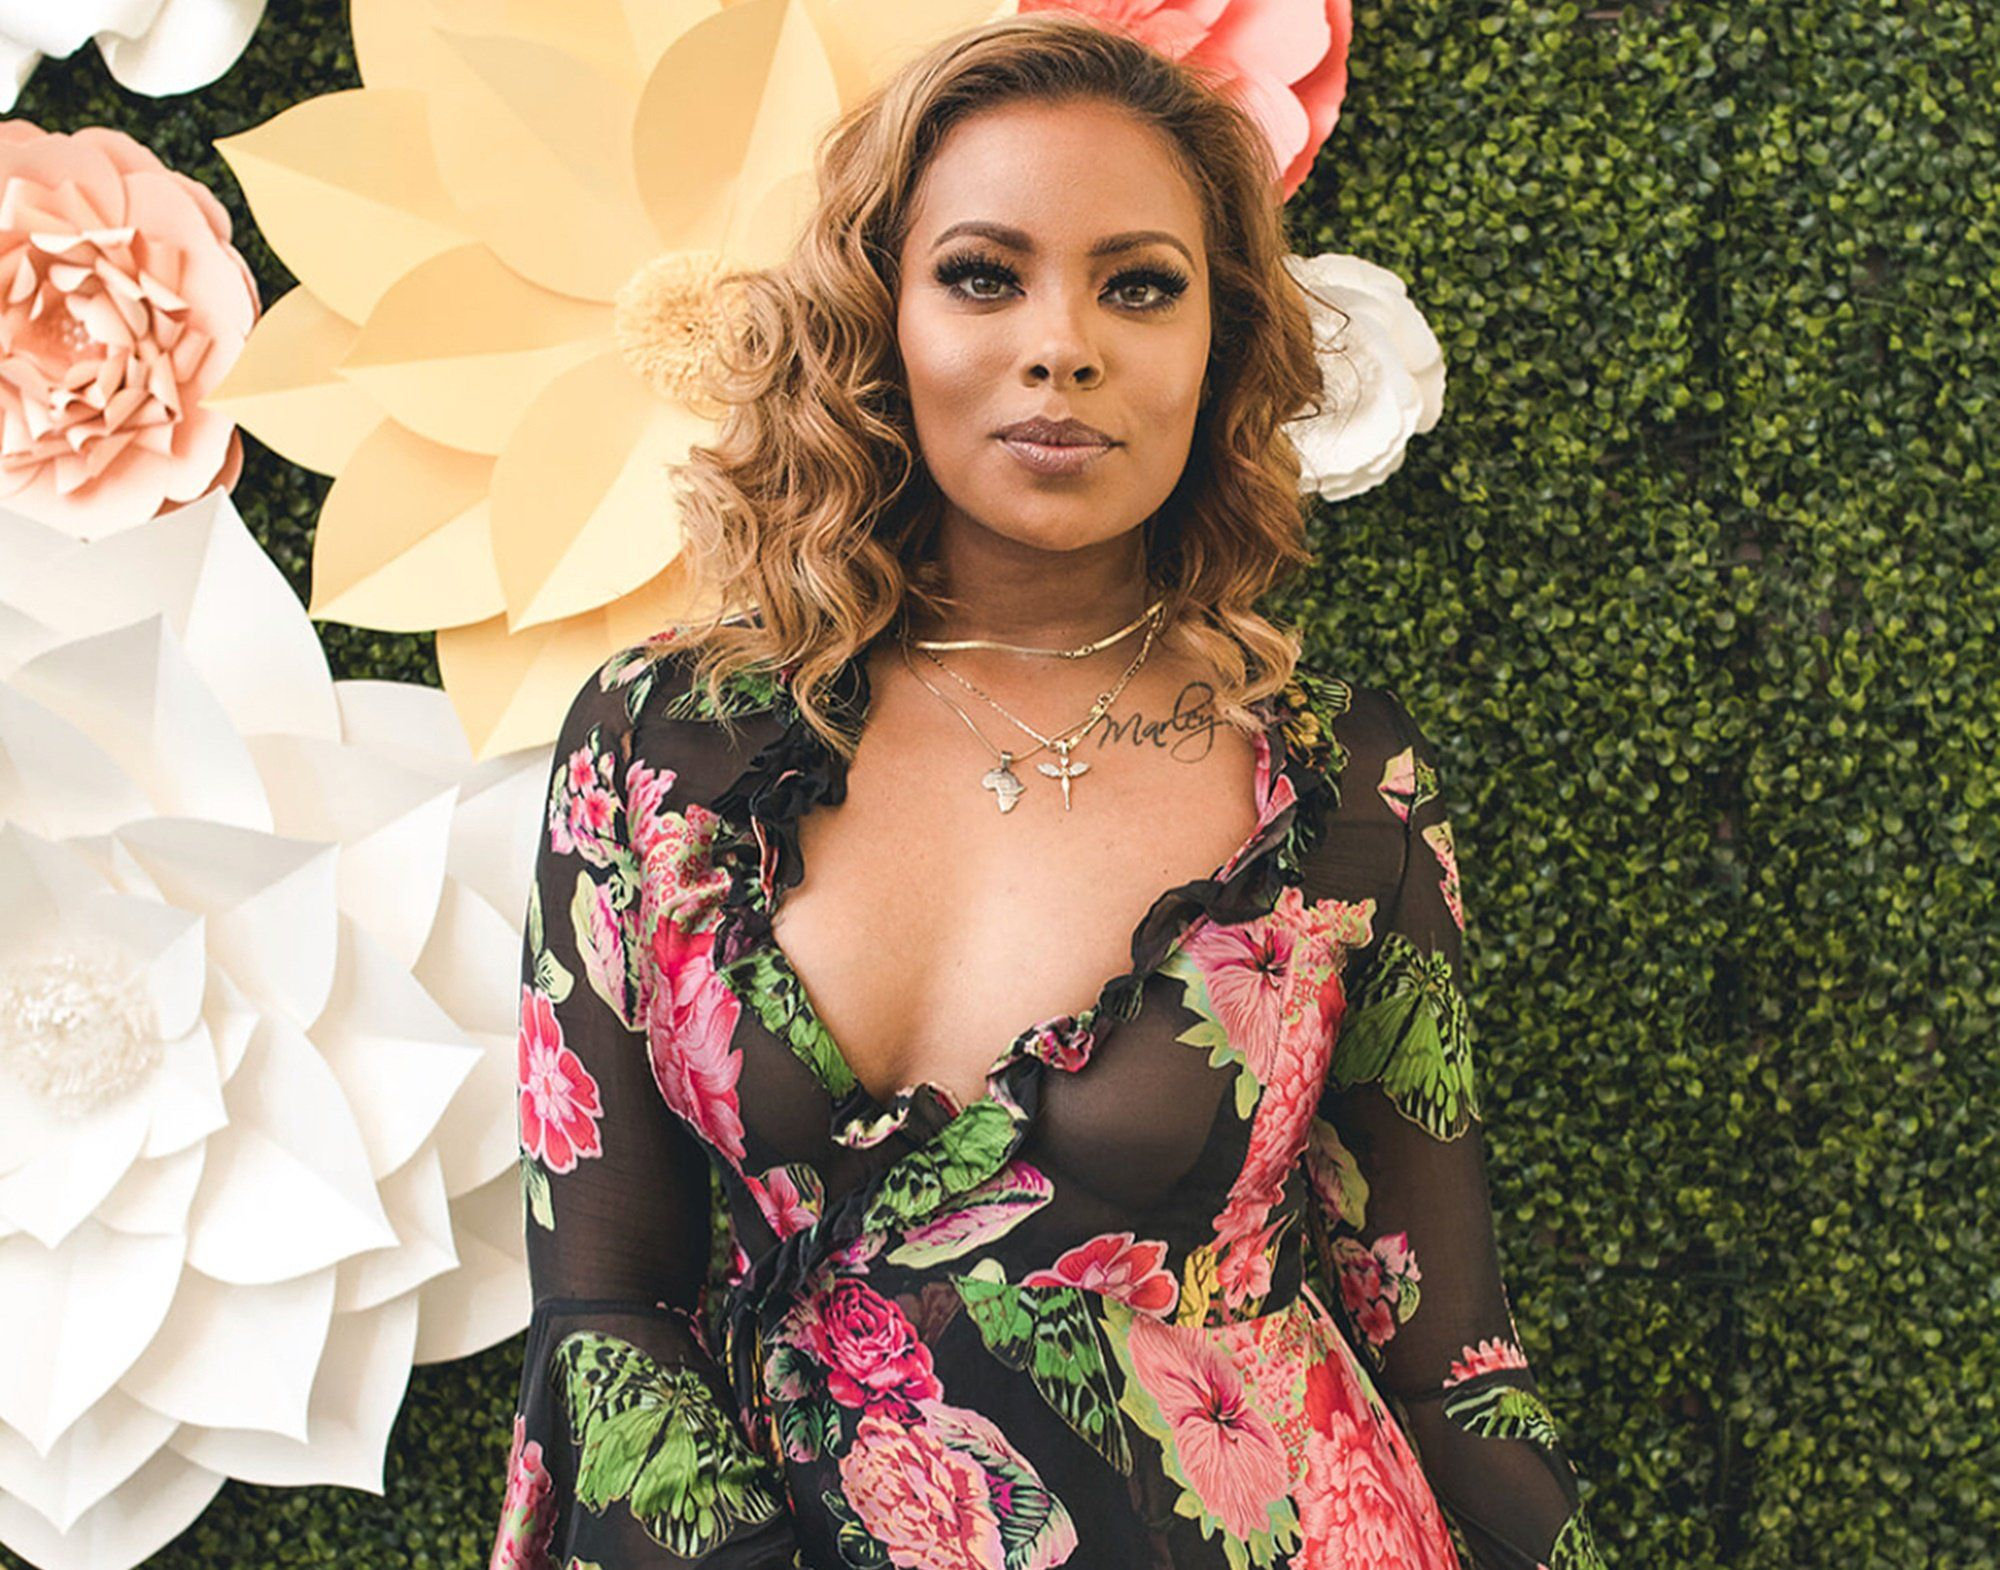 Eva Marcille Shares Juicy Photos With Mike Sterling From Cynthia Bailey's Wedding – Haters Try To Body Shame Her